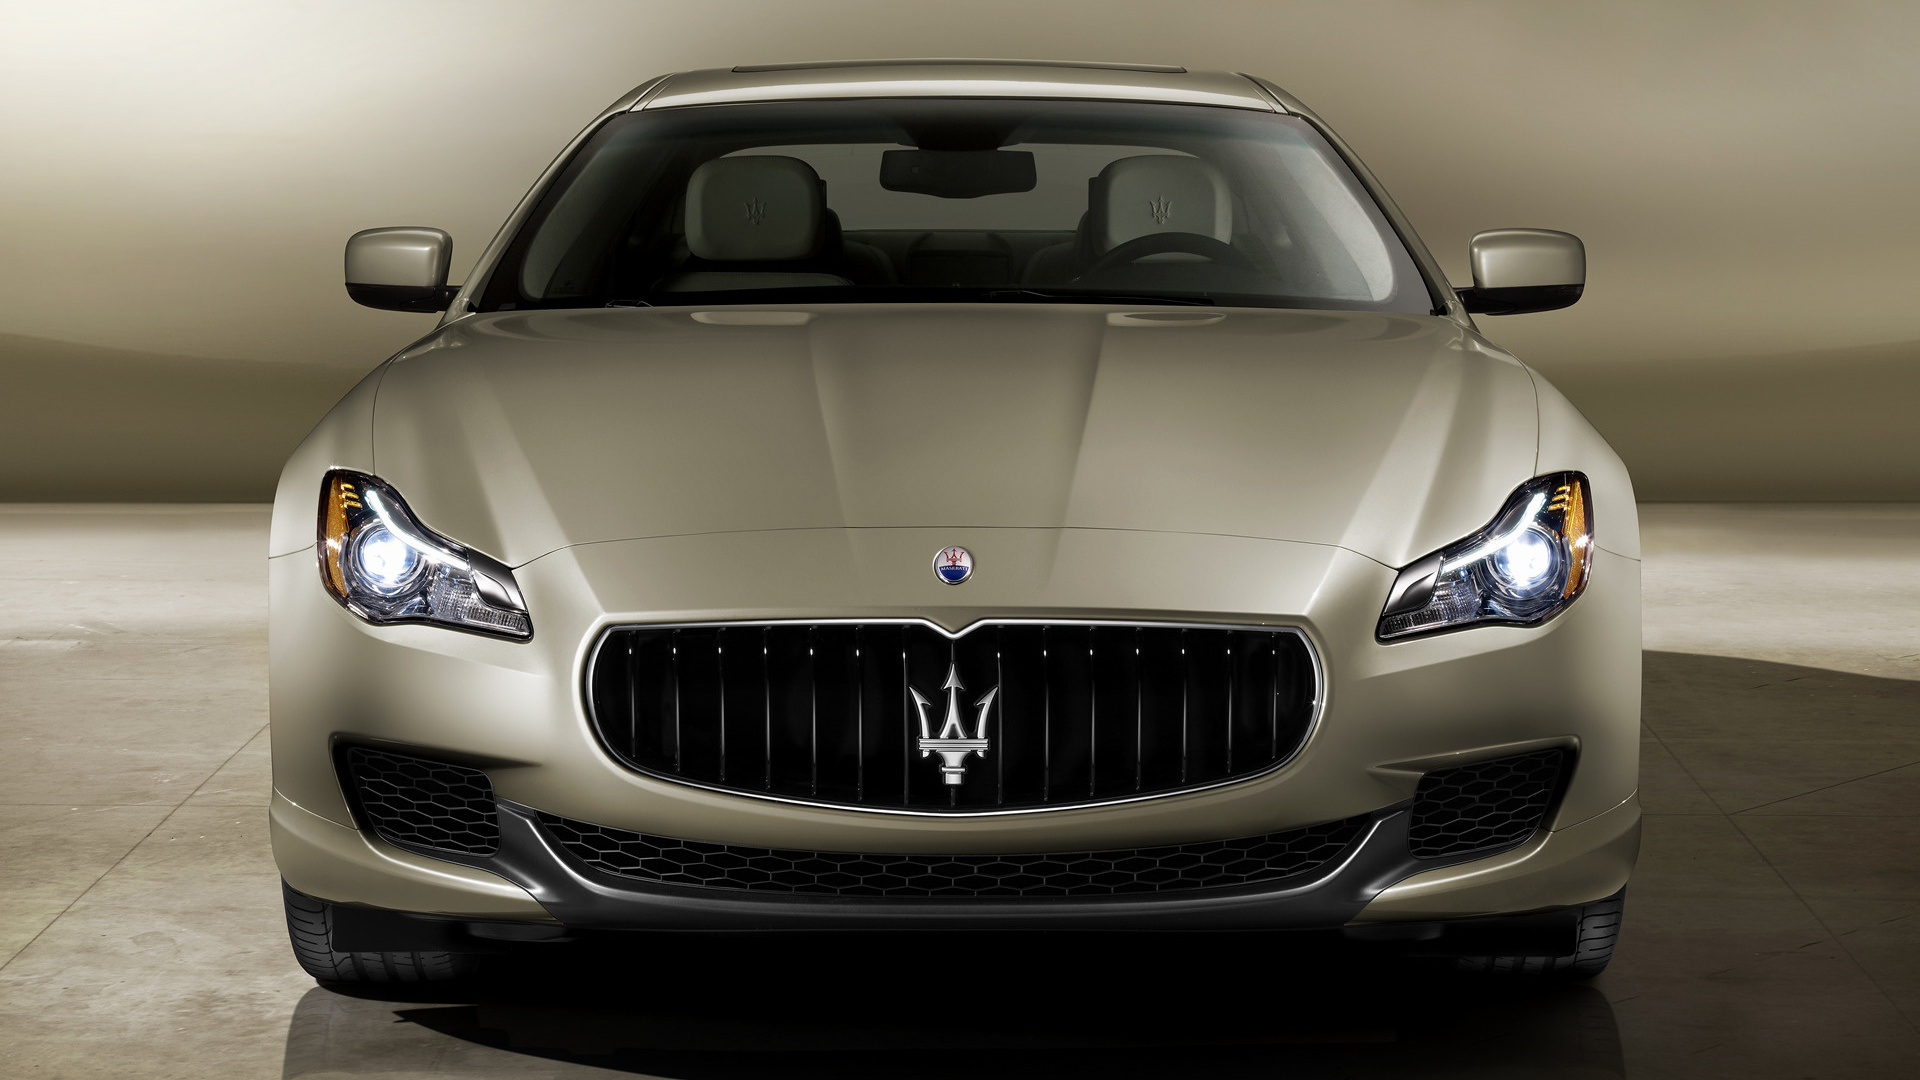 2013 Maserati Quattroporte GTS - Wallpapers and HD Images ...